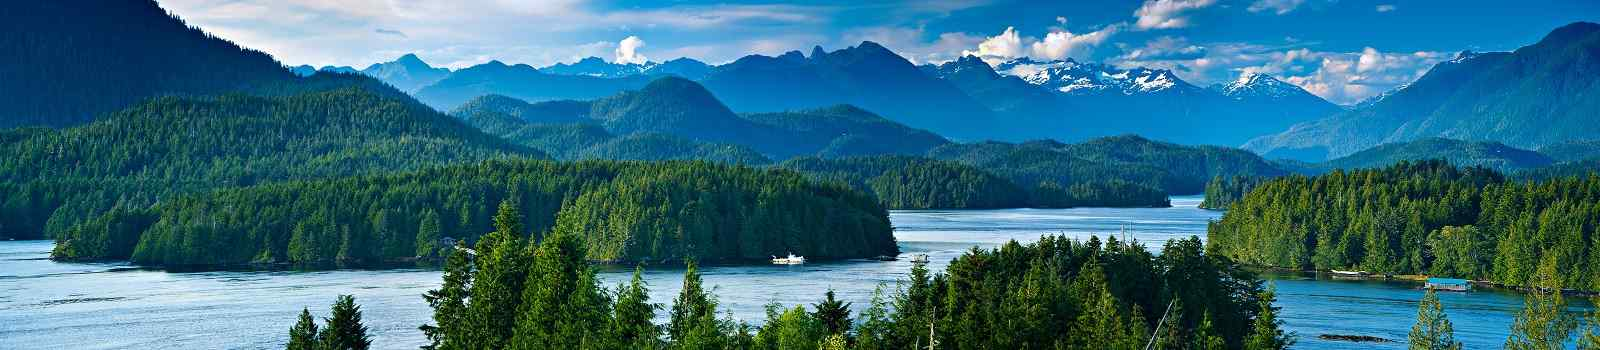 -Kanada Vancouver Island Panoramic view of Tofino